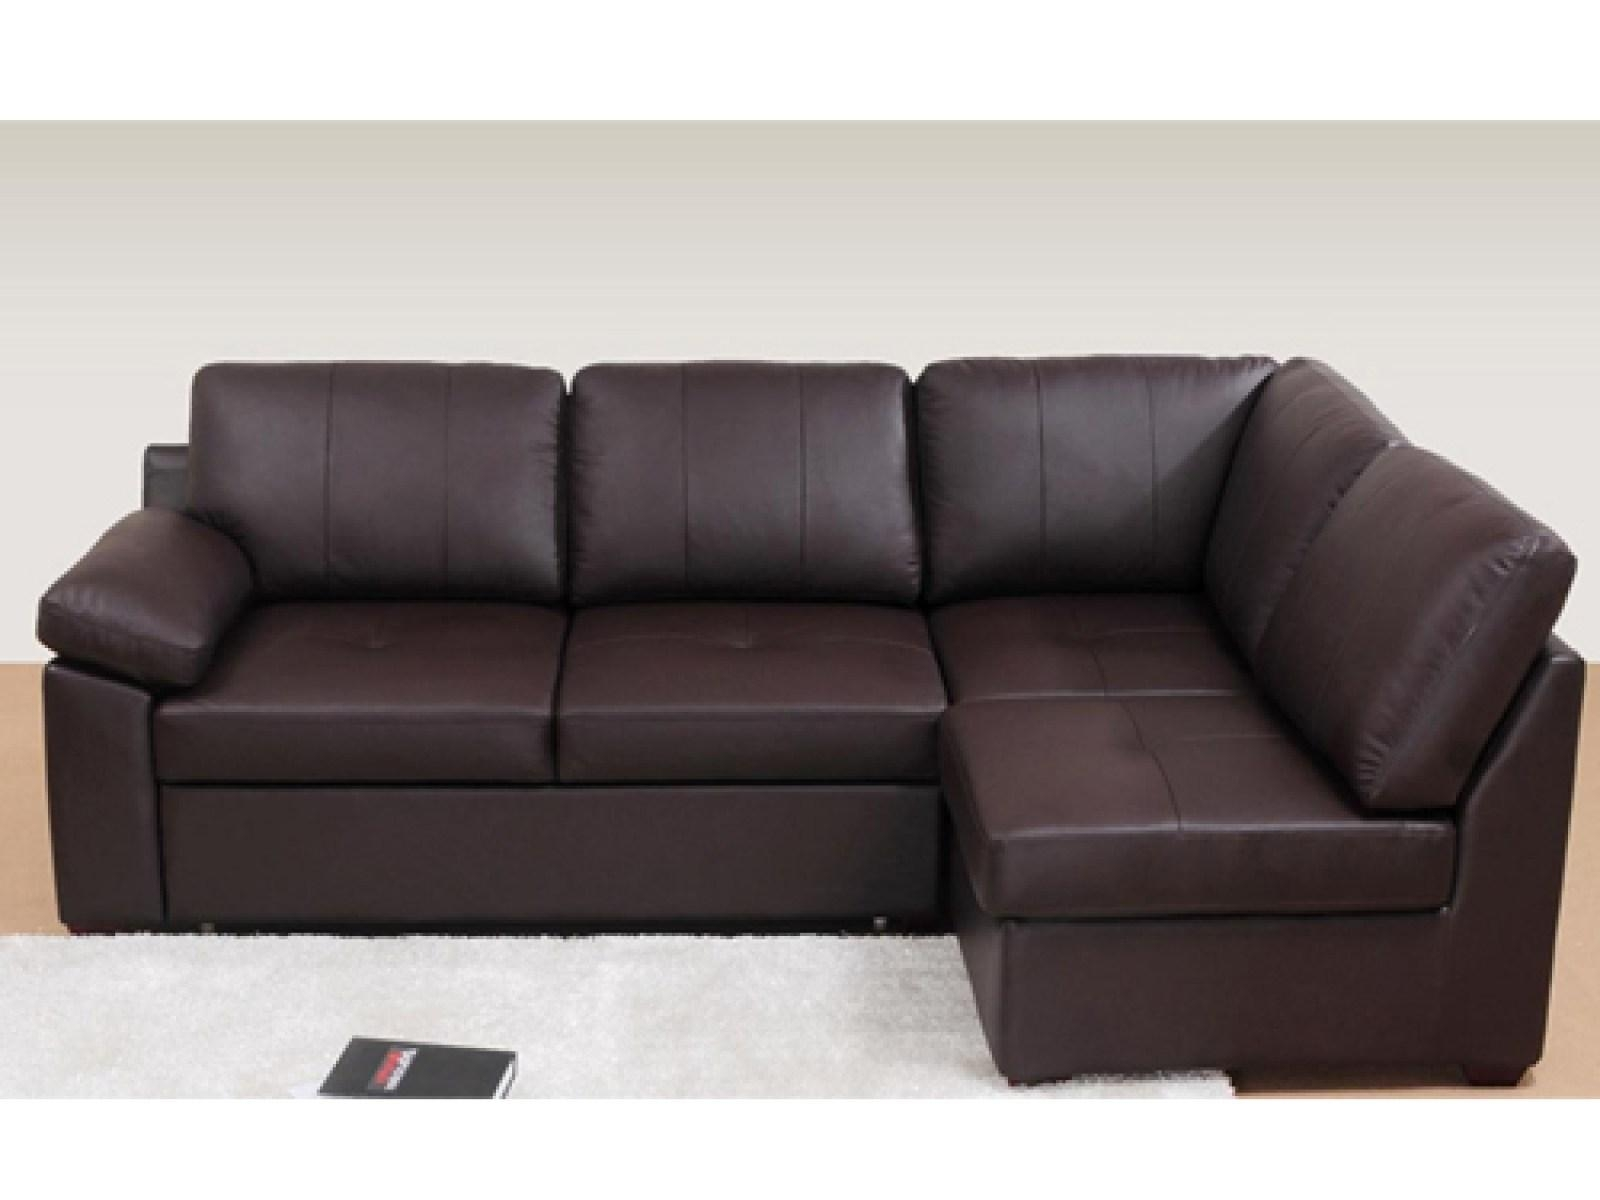 ▻ Sofa : 8 Leather Corner Sofa Bed Wonderful Leather Corner Sofa Intended For Leather Corner Sofa Bed (View 13 of 20)